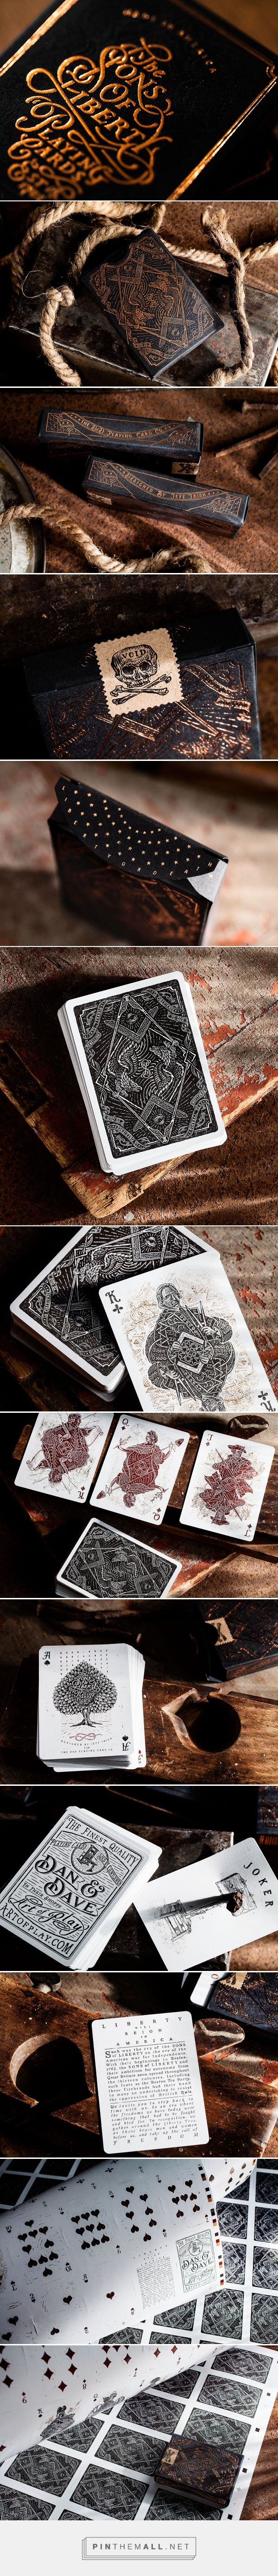 Sons of Liberty Playing Cards by Jeff Trish